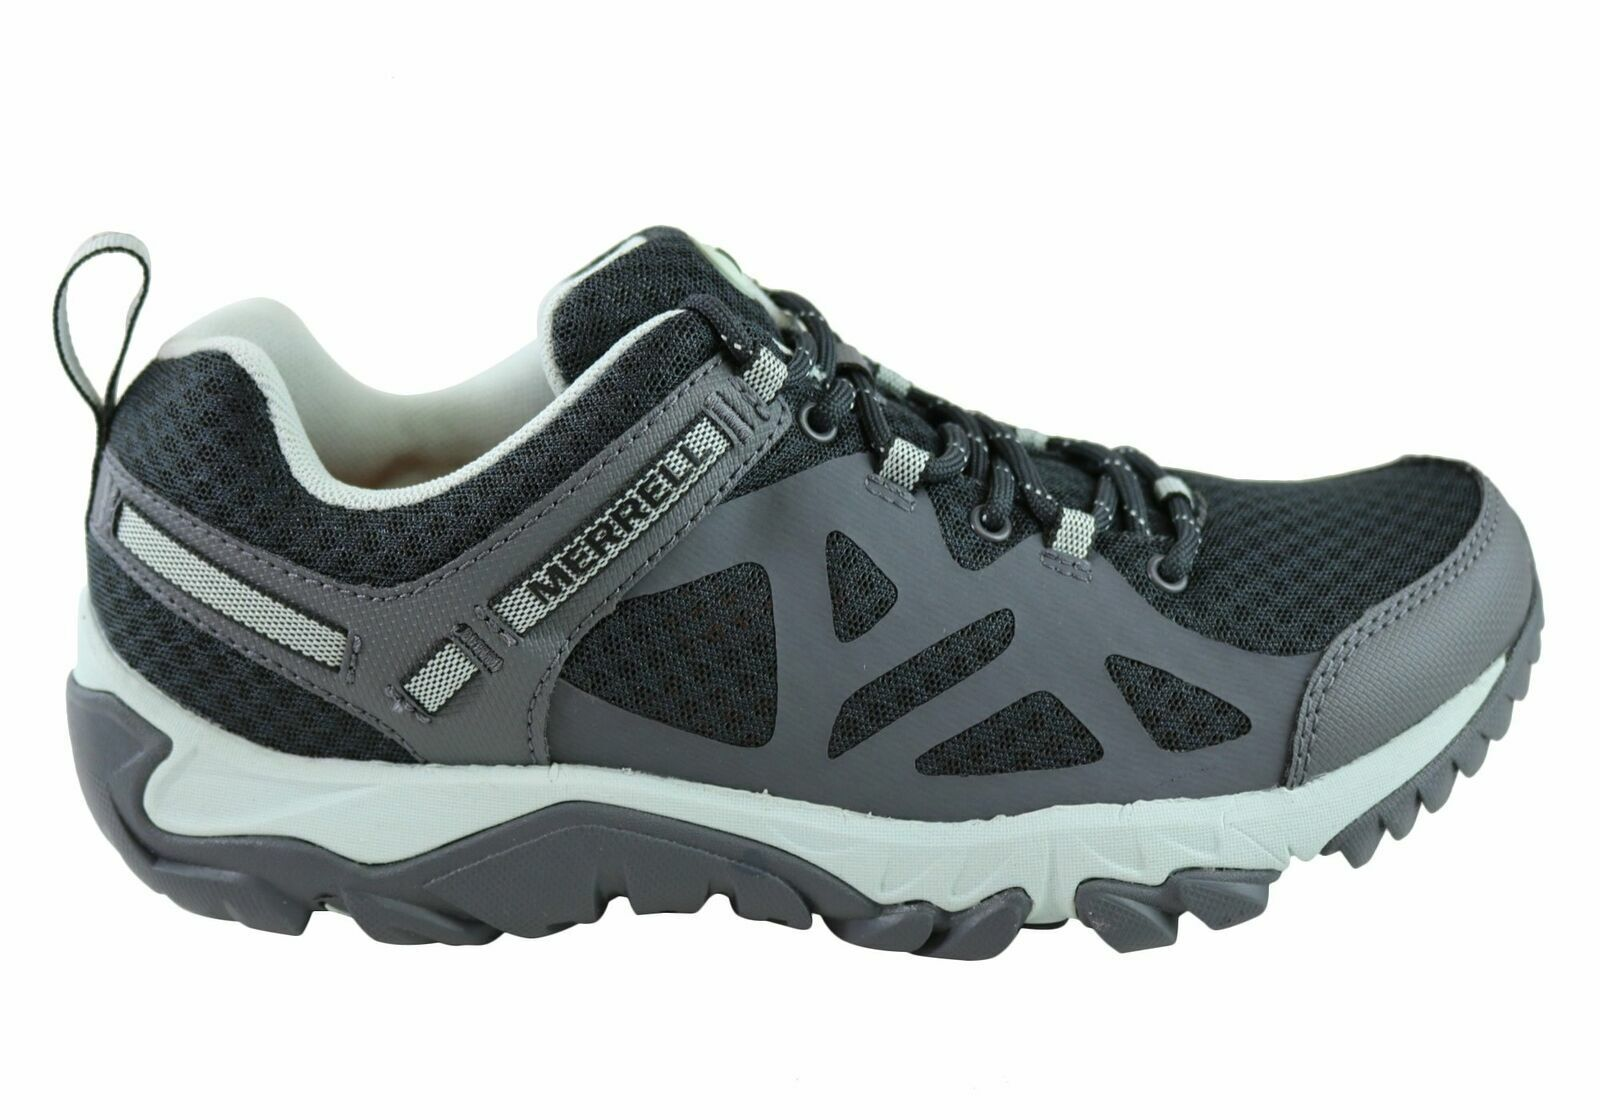 LADIES MERRELL OUTRIGHT EDGE BLACK SELECT GRIP RUNNING WALKING TRAIL SHOES 4-8